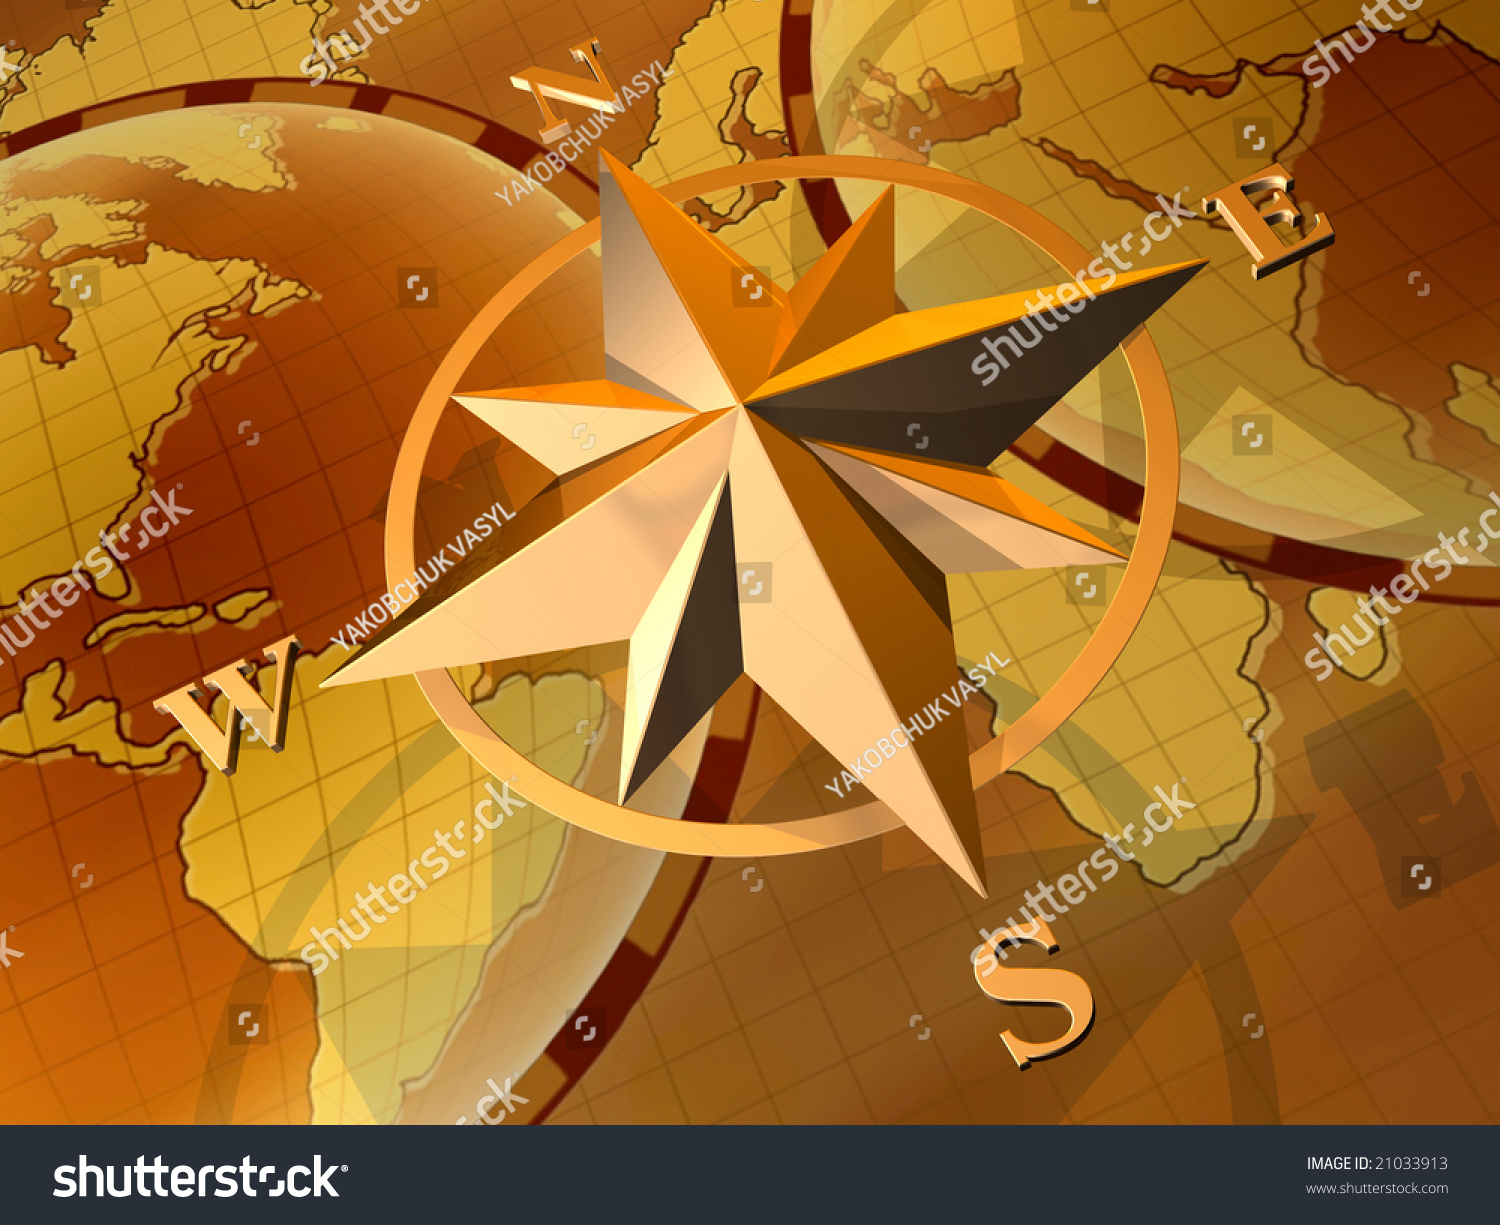 Royalty Free Stock Illustration Of Compass Rose On Background World